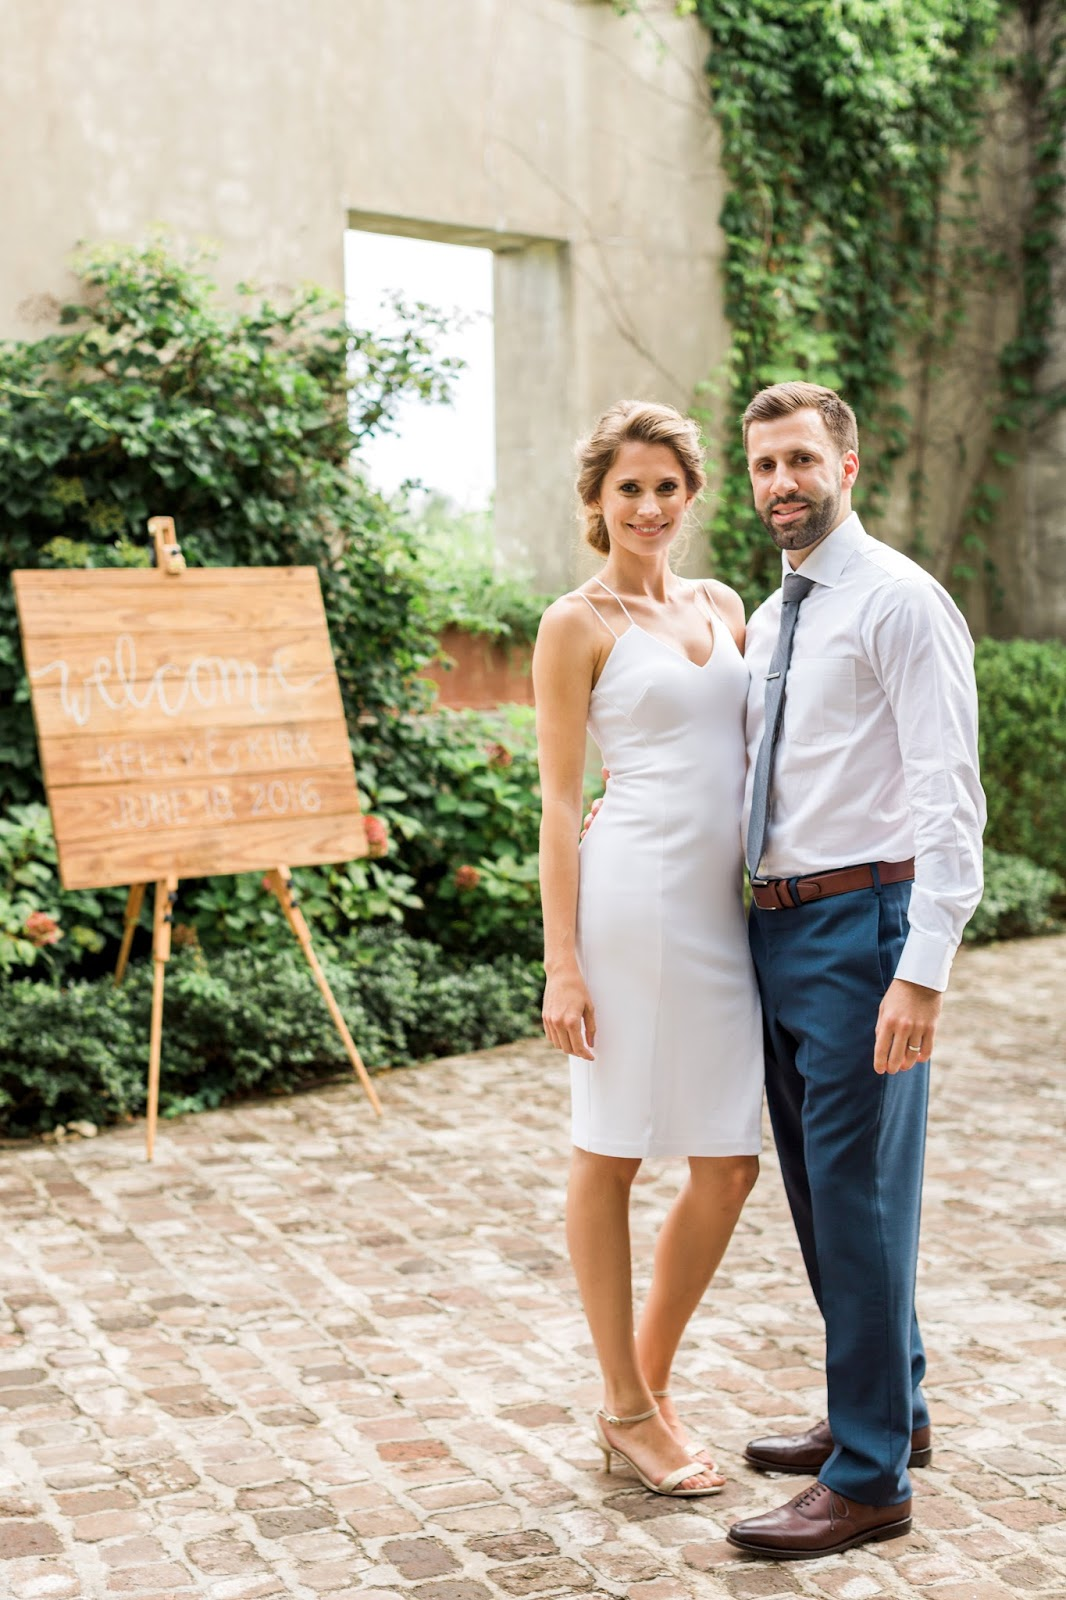 Fine-art wedding photography by Rustic White Photography. Featured in Book 1 of The Southeastern Bride magazine.